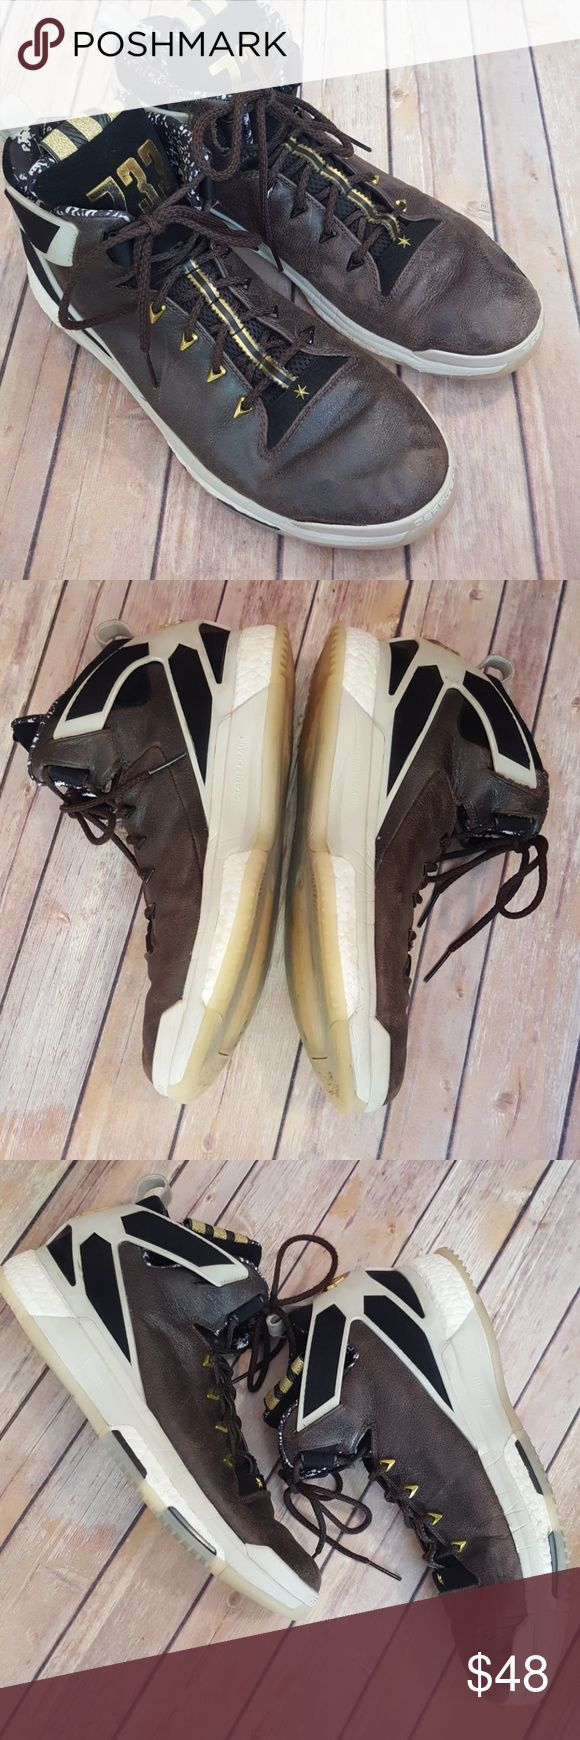 Adidas D Rose 6 Boost BHM Adidas D Rose 6 Boost BHM, sz 15. Jesse Owens tribute. Used, but still have tons of life left in them. Brown leather, gold accents. One very small area where the rubber is separating from the leather on the front of the right shoe (see photos) adidas Shoes